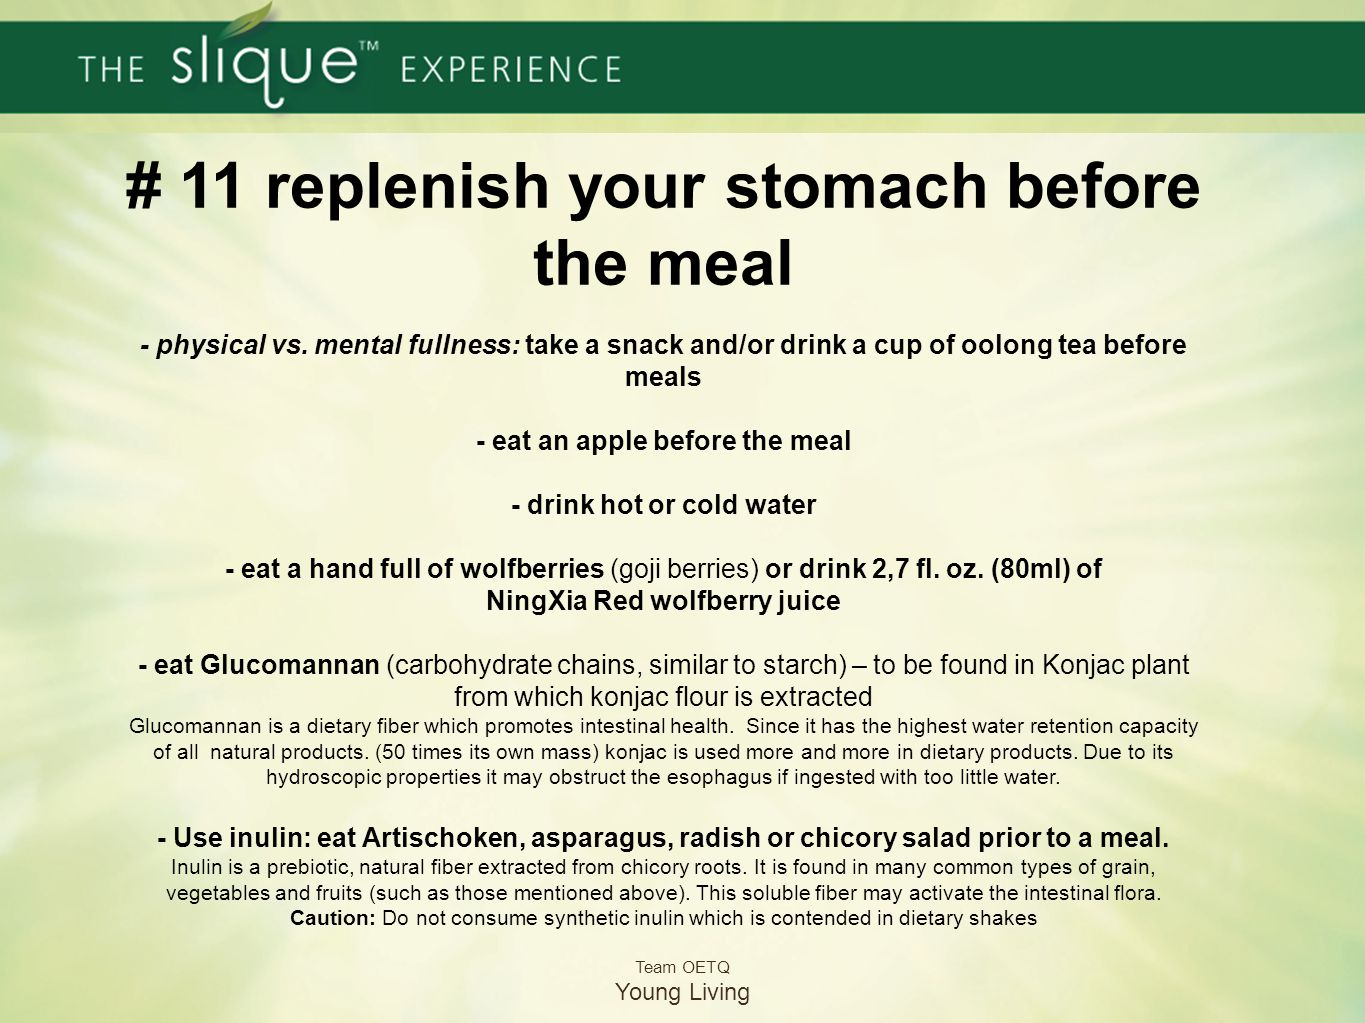 # 11 replenish your stomach before the meal - physical vs